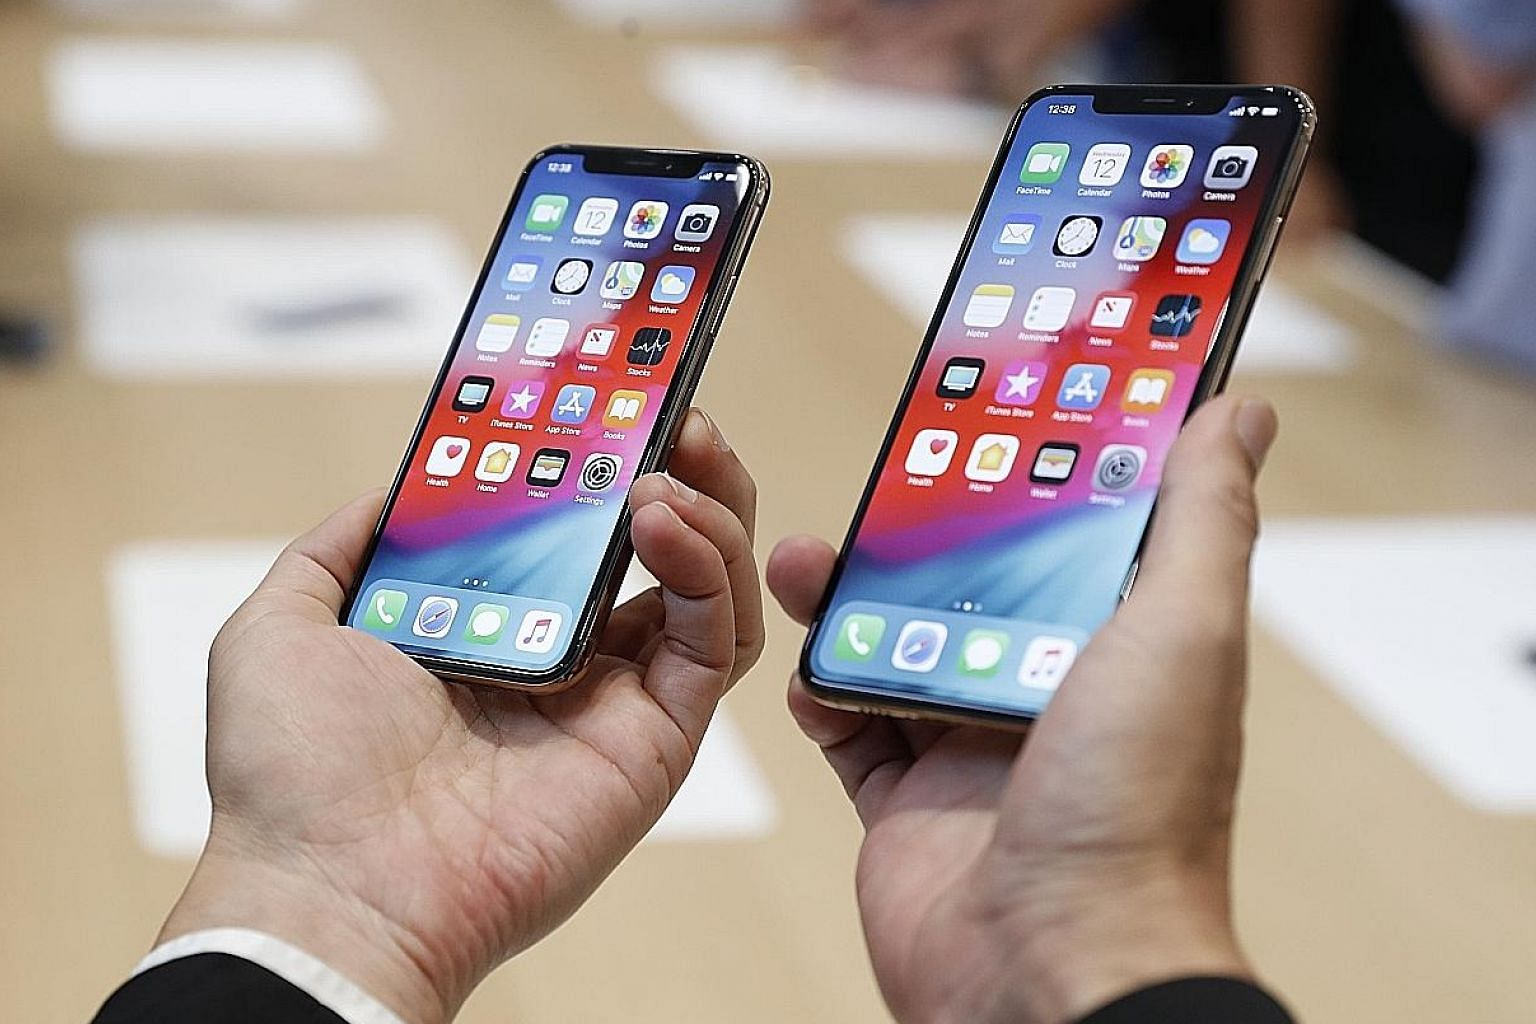 The Apple iPhone XS and XS Max have displays with vivid colours and great contrast.